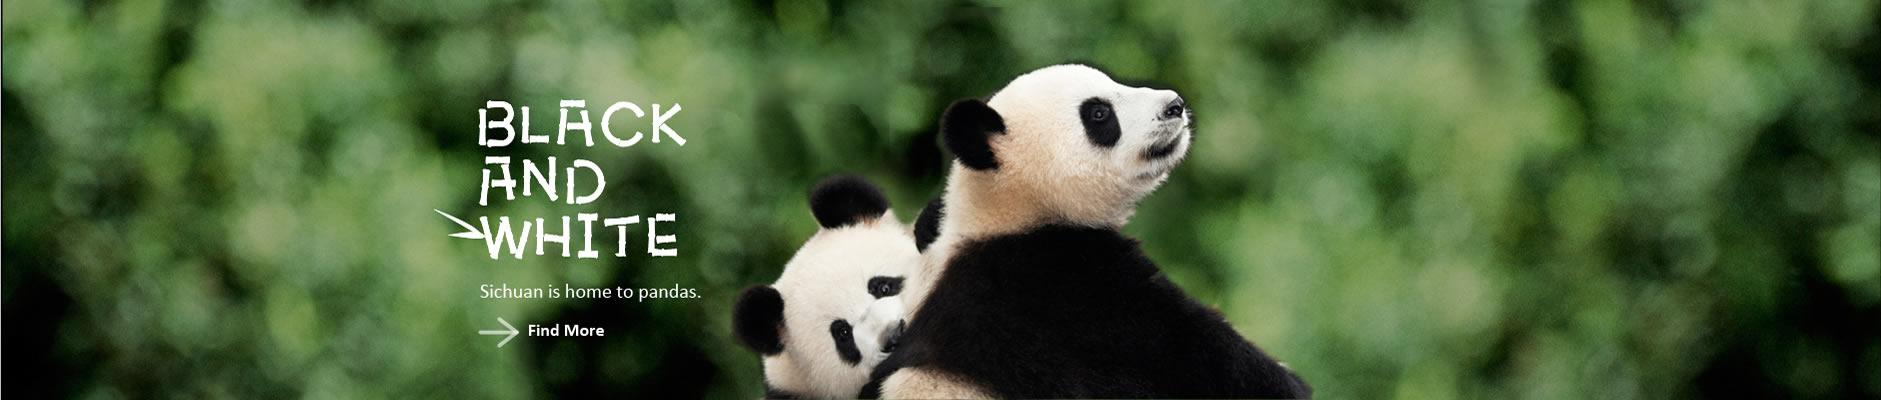 chengdu panda tour,chengdu panda holding cost, volunteer program, travel guide